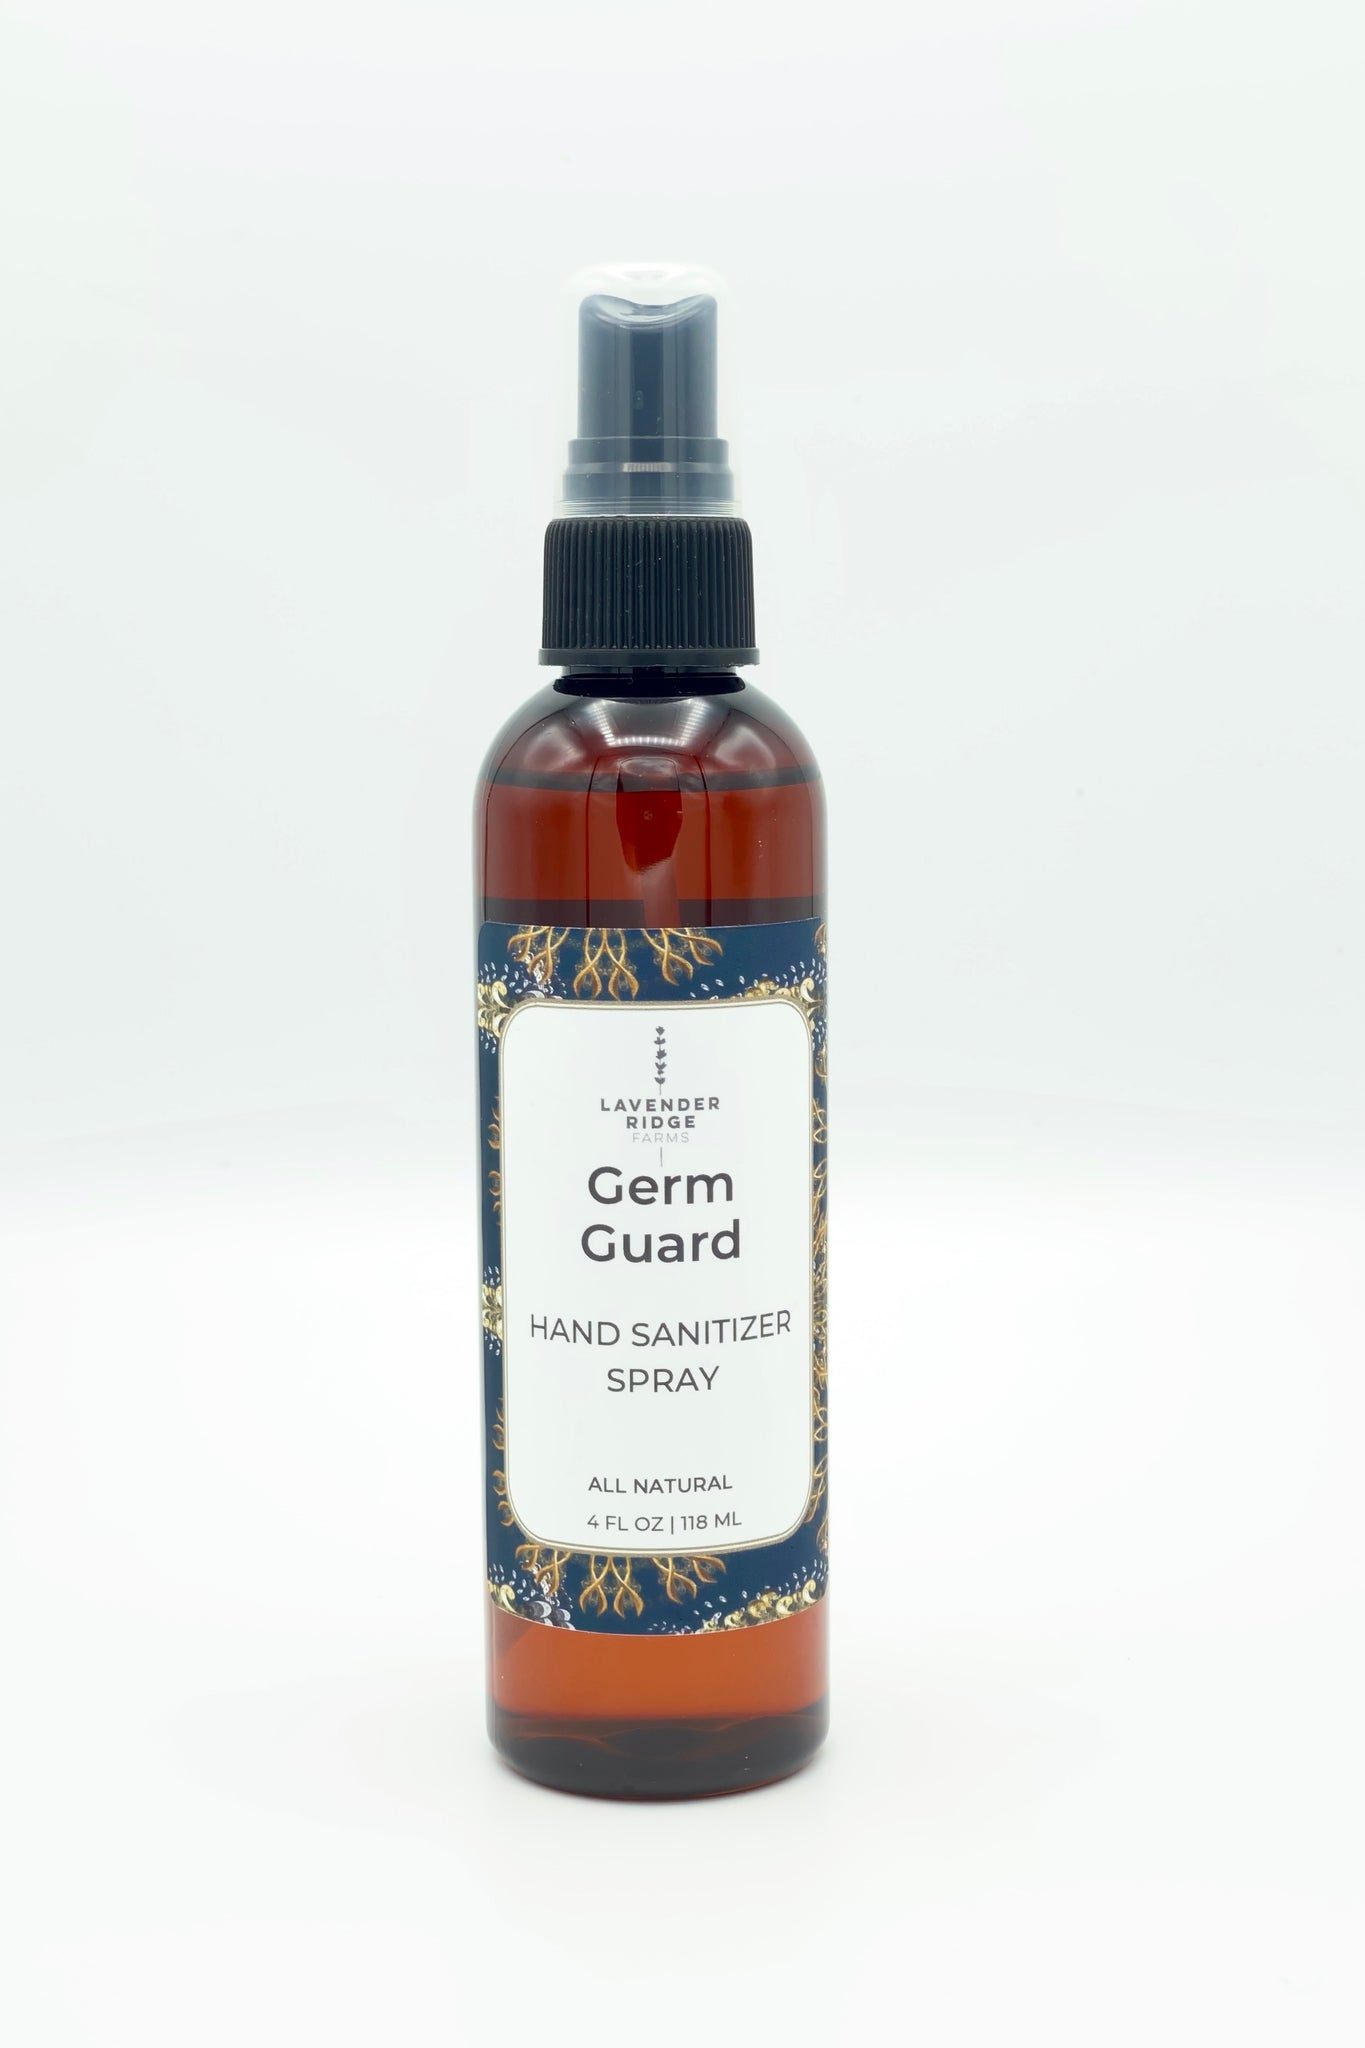 Hand Sanitizer Spray - Germ Guard Blend